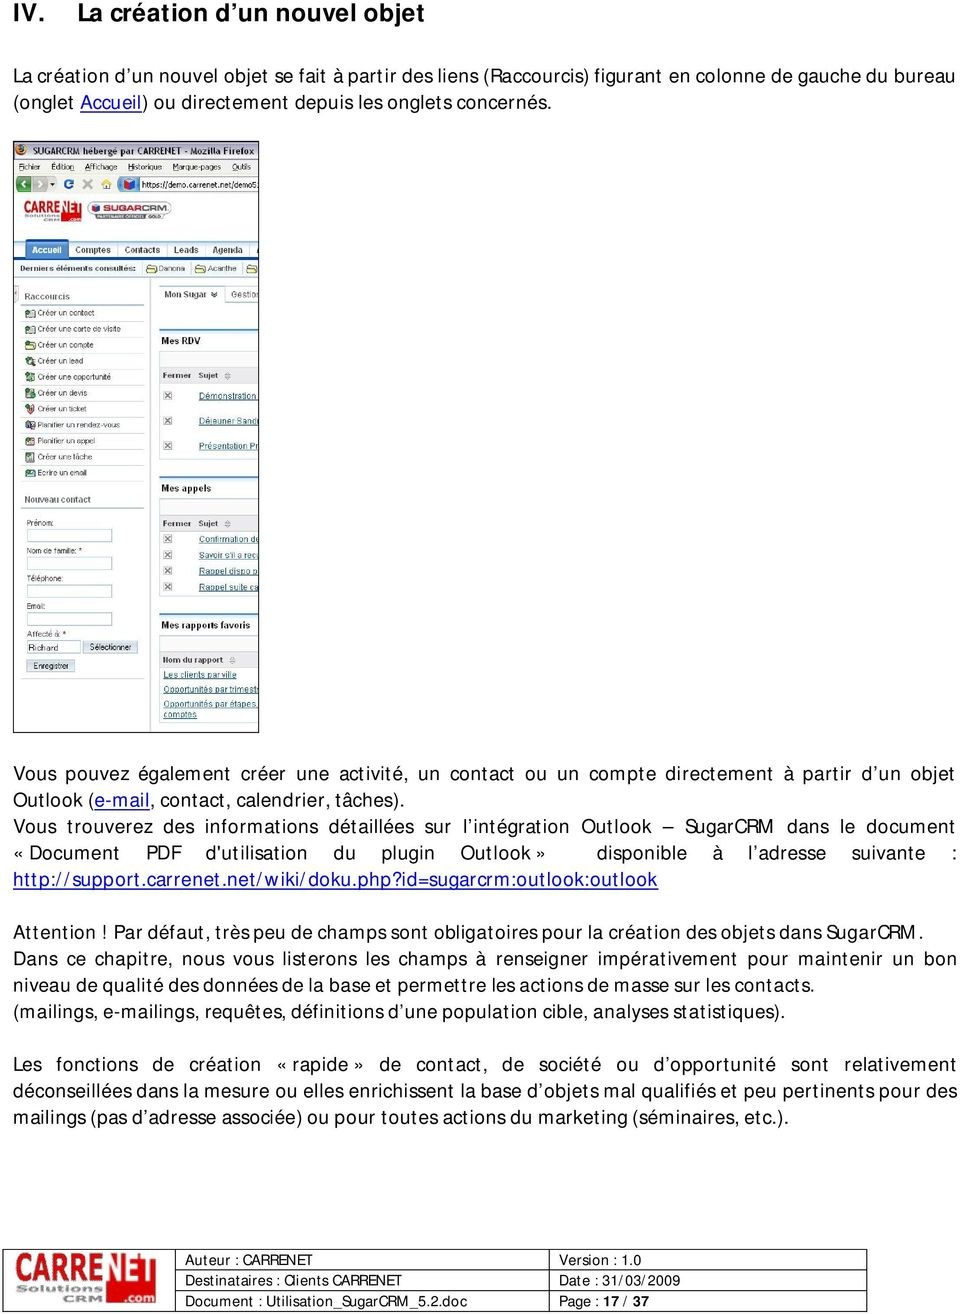 Vous trouverez des informations détaillées sur l intégration Outlook SugarCRM dans le document «Document PDF d'utilisation du plugin Outlook» disponible à l adresse suivante : http://support.carrenet.